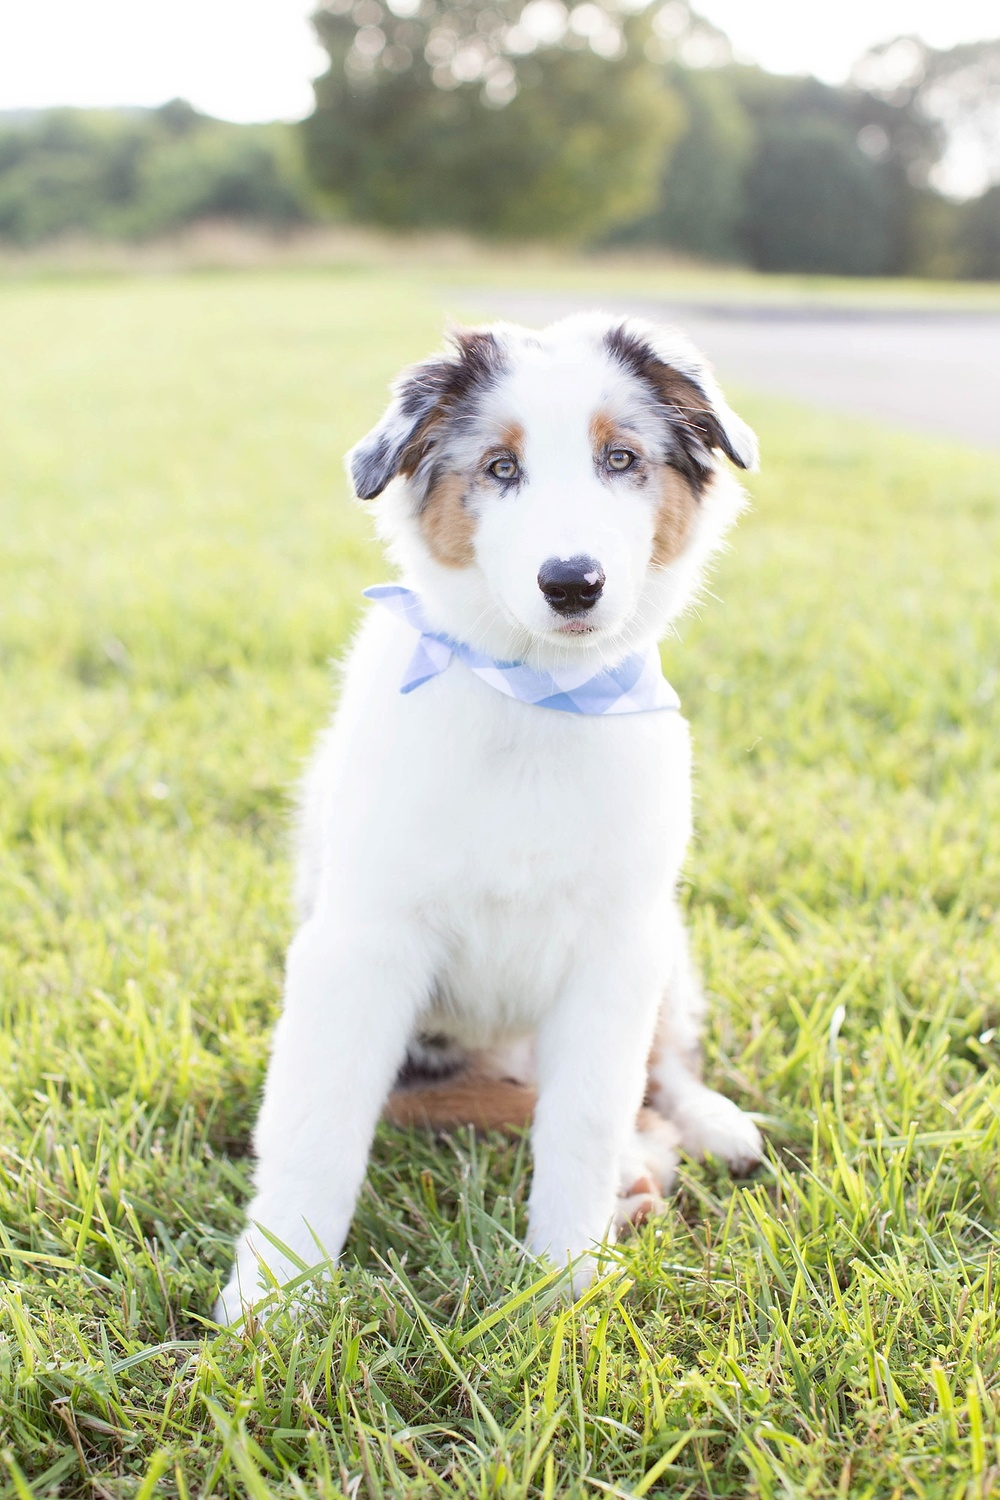 New Puppy Session | Ashley Powell Photography | Roanoke, VA